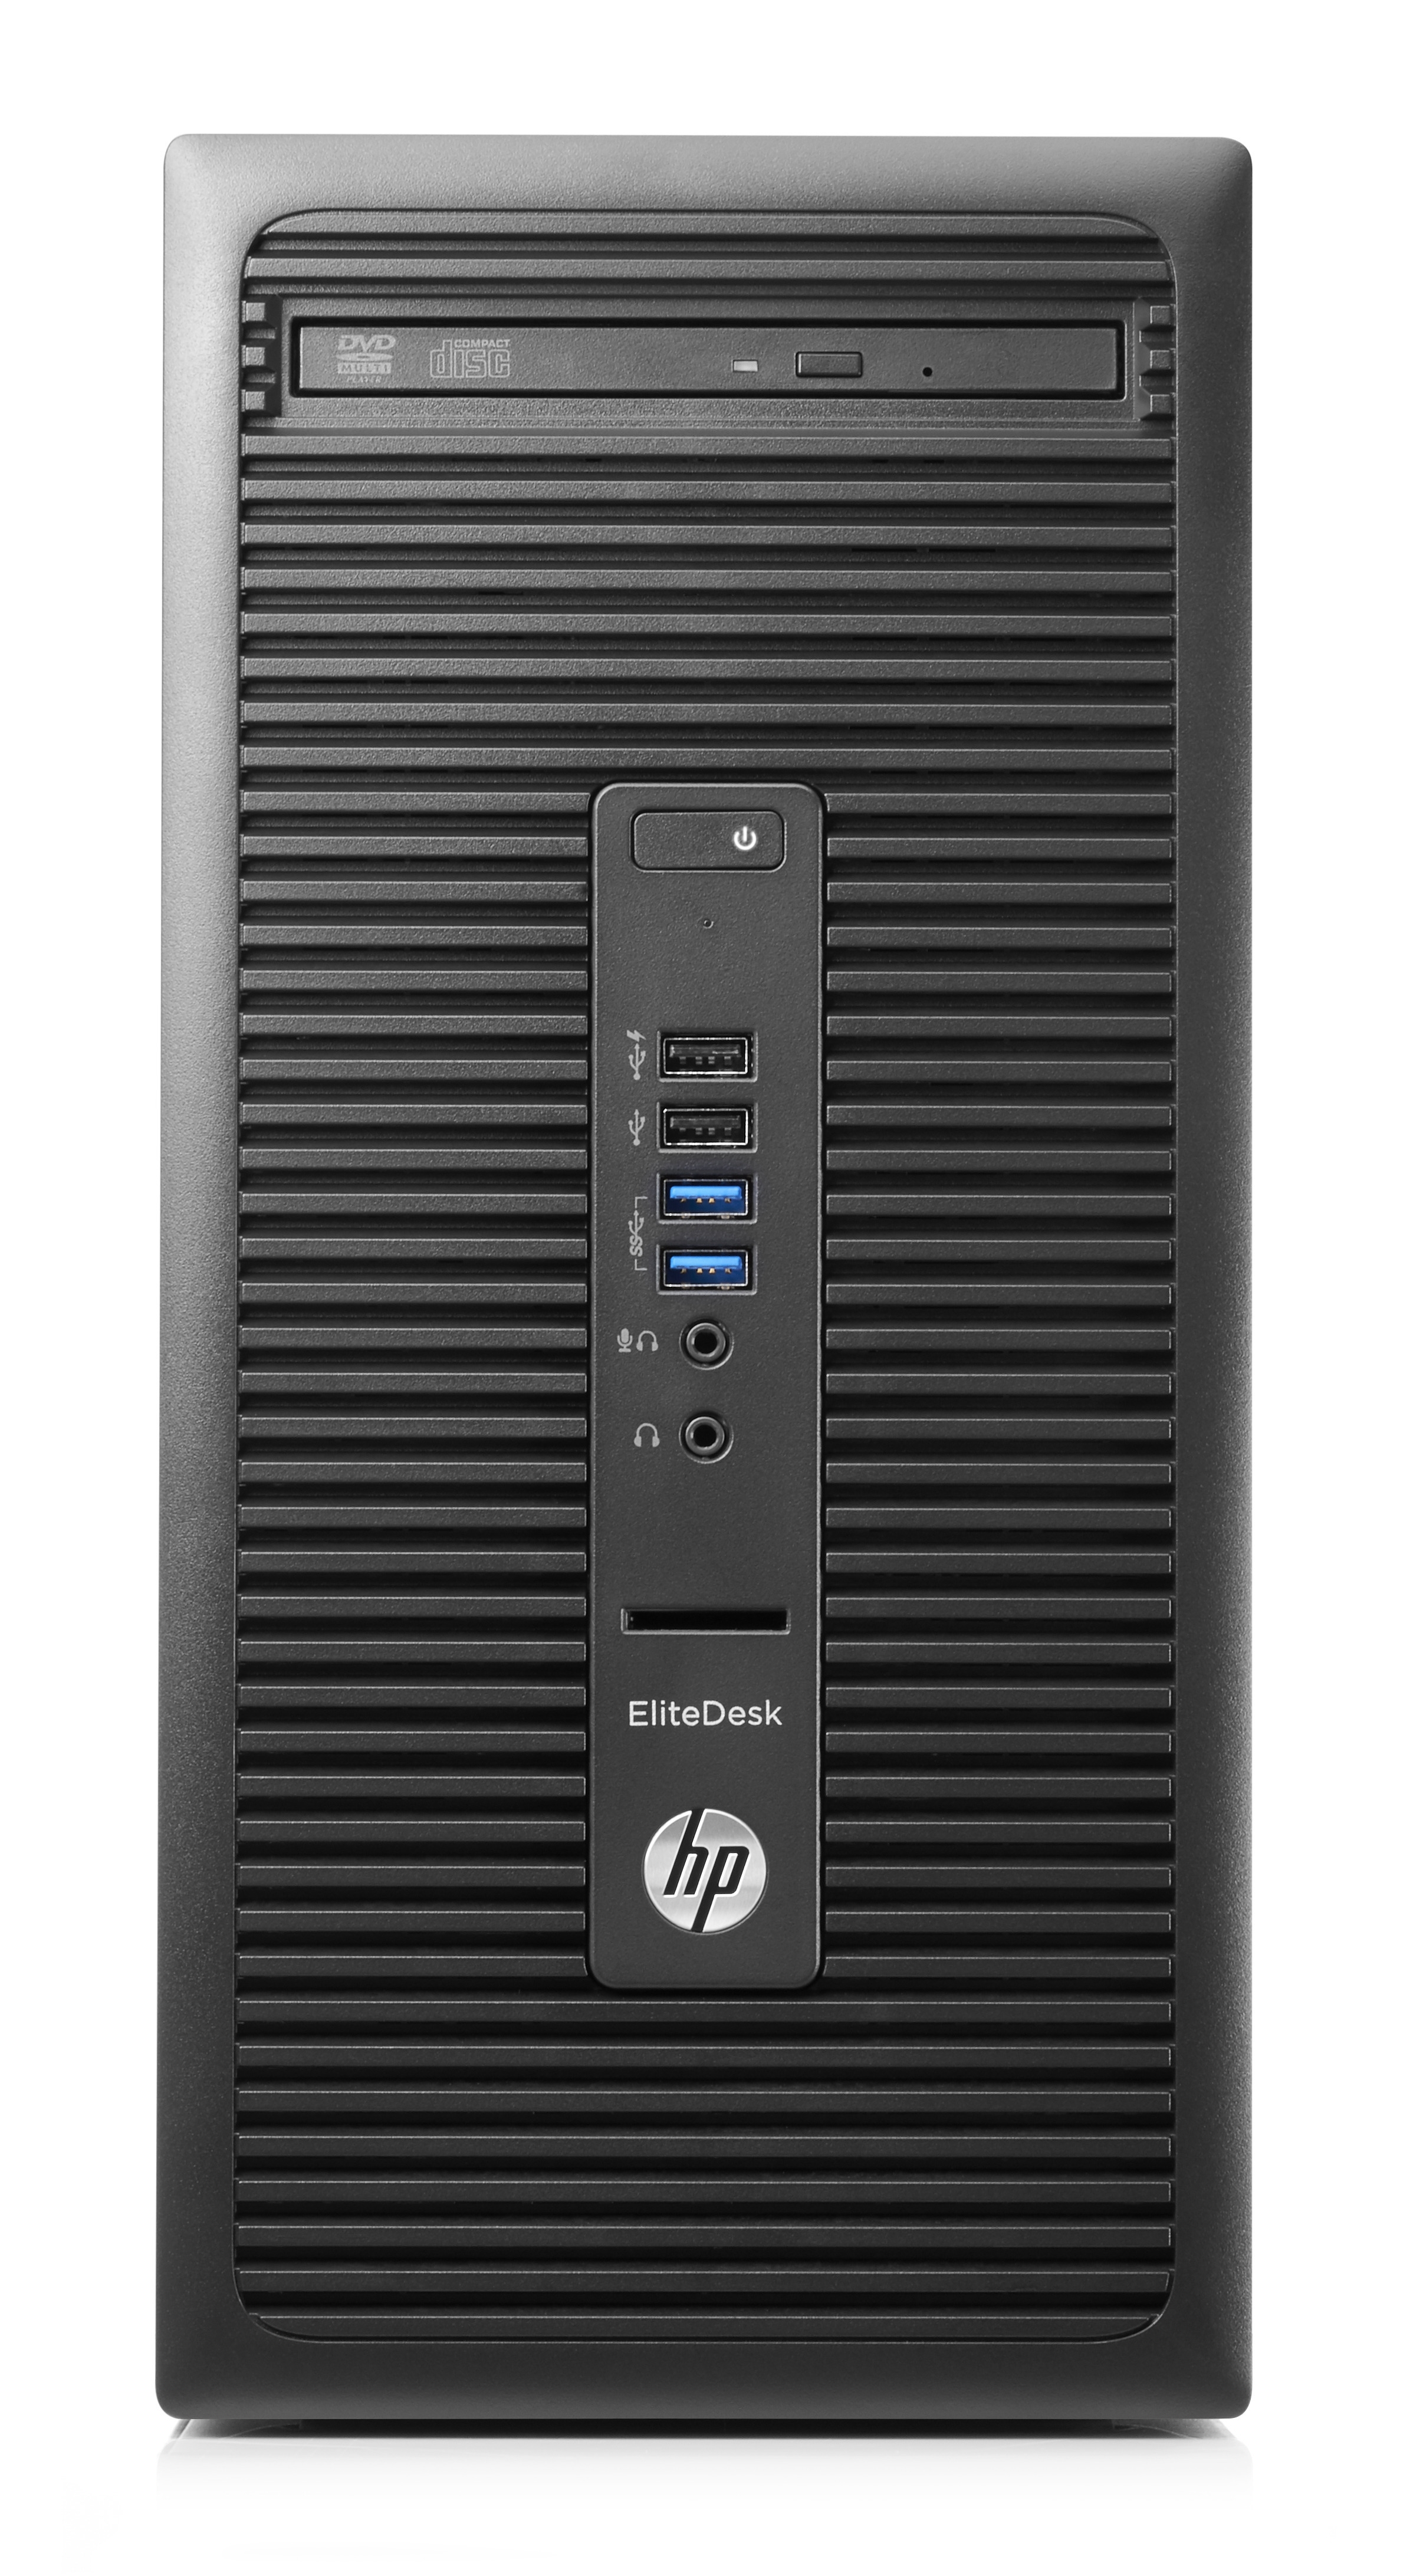 HP EliteDesk 705 G2 MT 3.2GHz A8 PRO-8650B Micro Tower Black